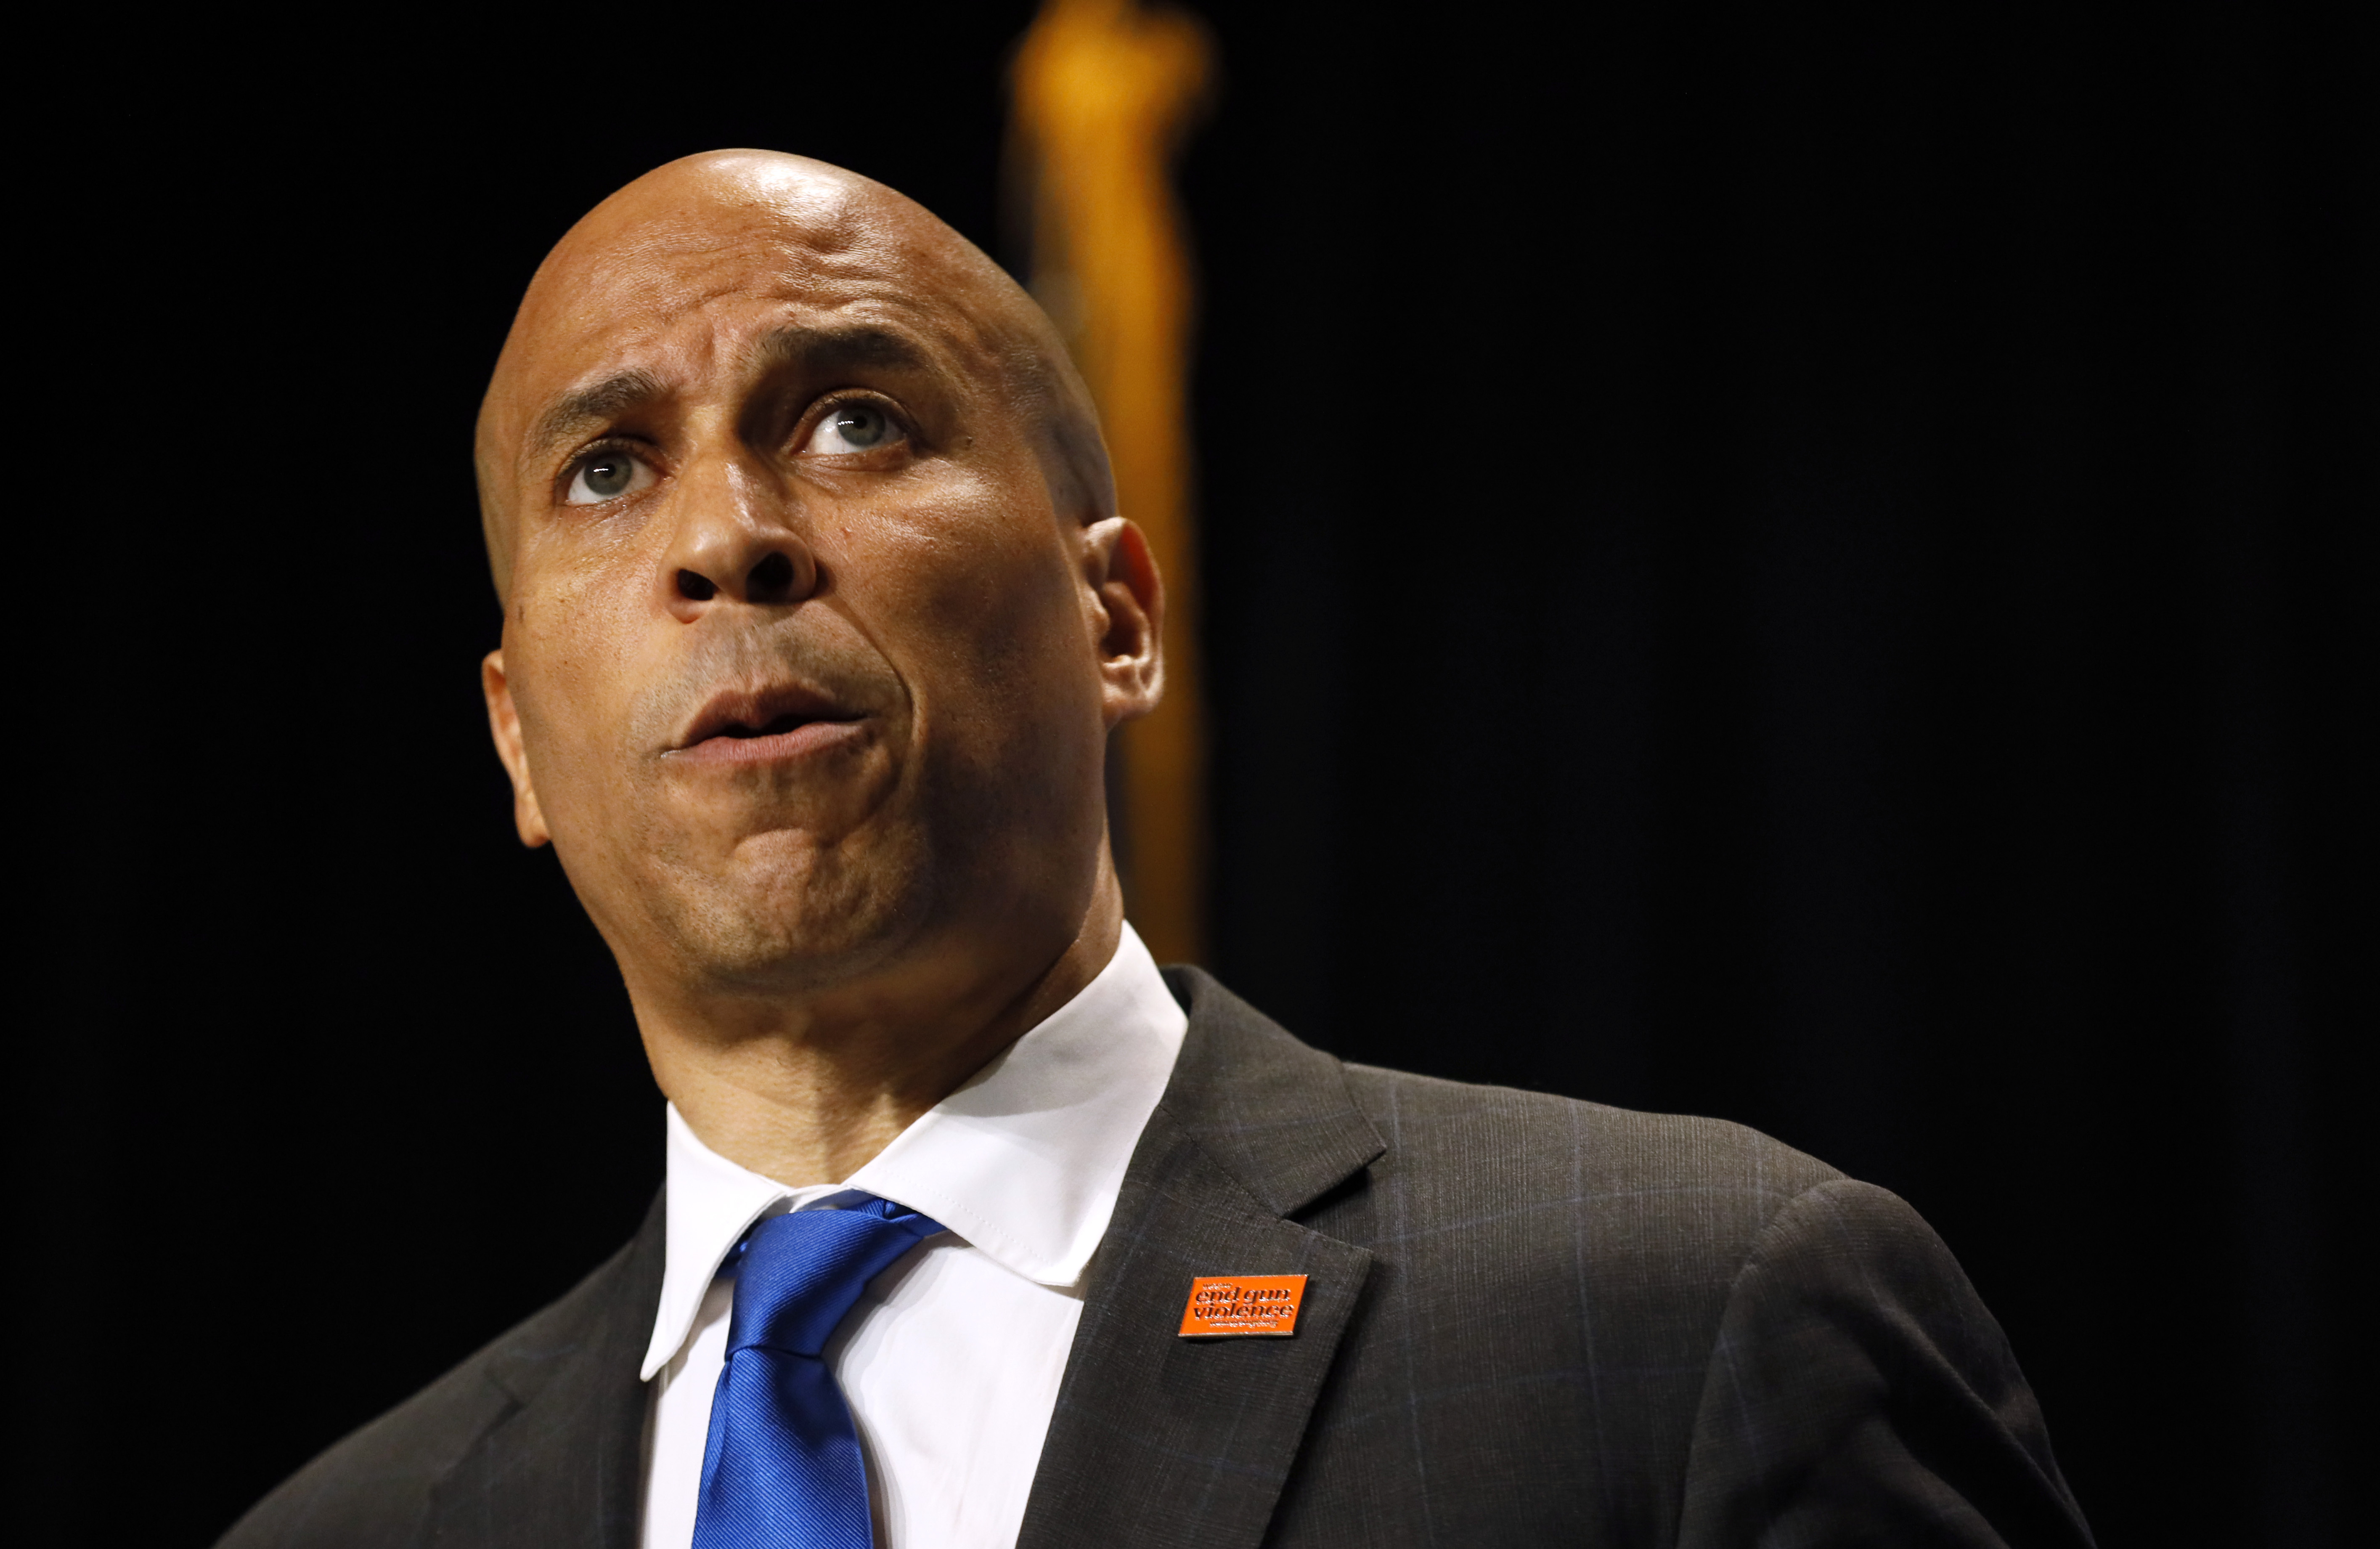 Booker to striking fast-food workers: 'This fight against McDonald's is an American fight'